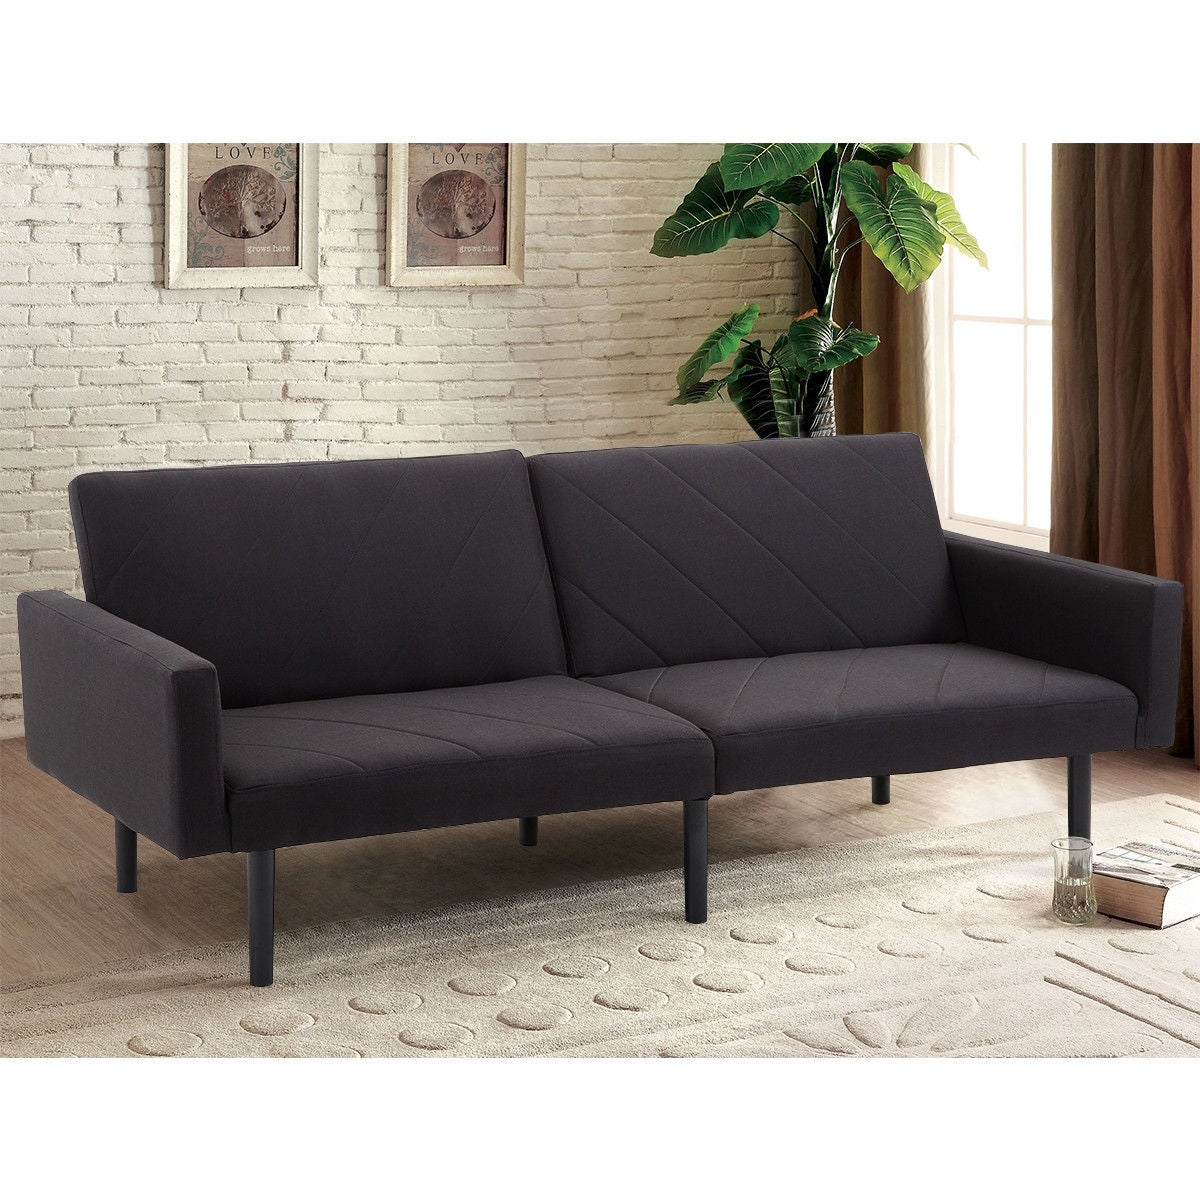 Fantastic Costway Futon Sofa Bed Convertible Recliner Couch Splitback Sleeper W Wood Legs Black Pdpeps Interior Chair Design Pdpepsorg